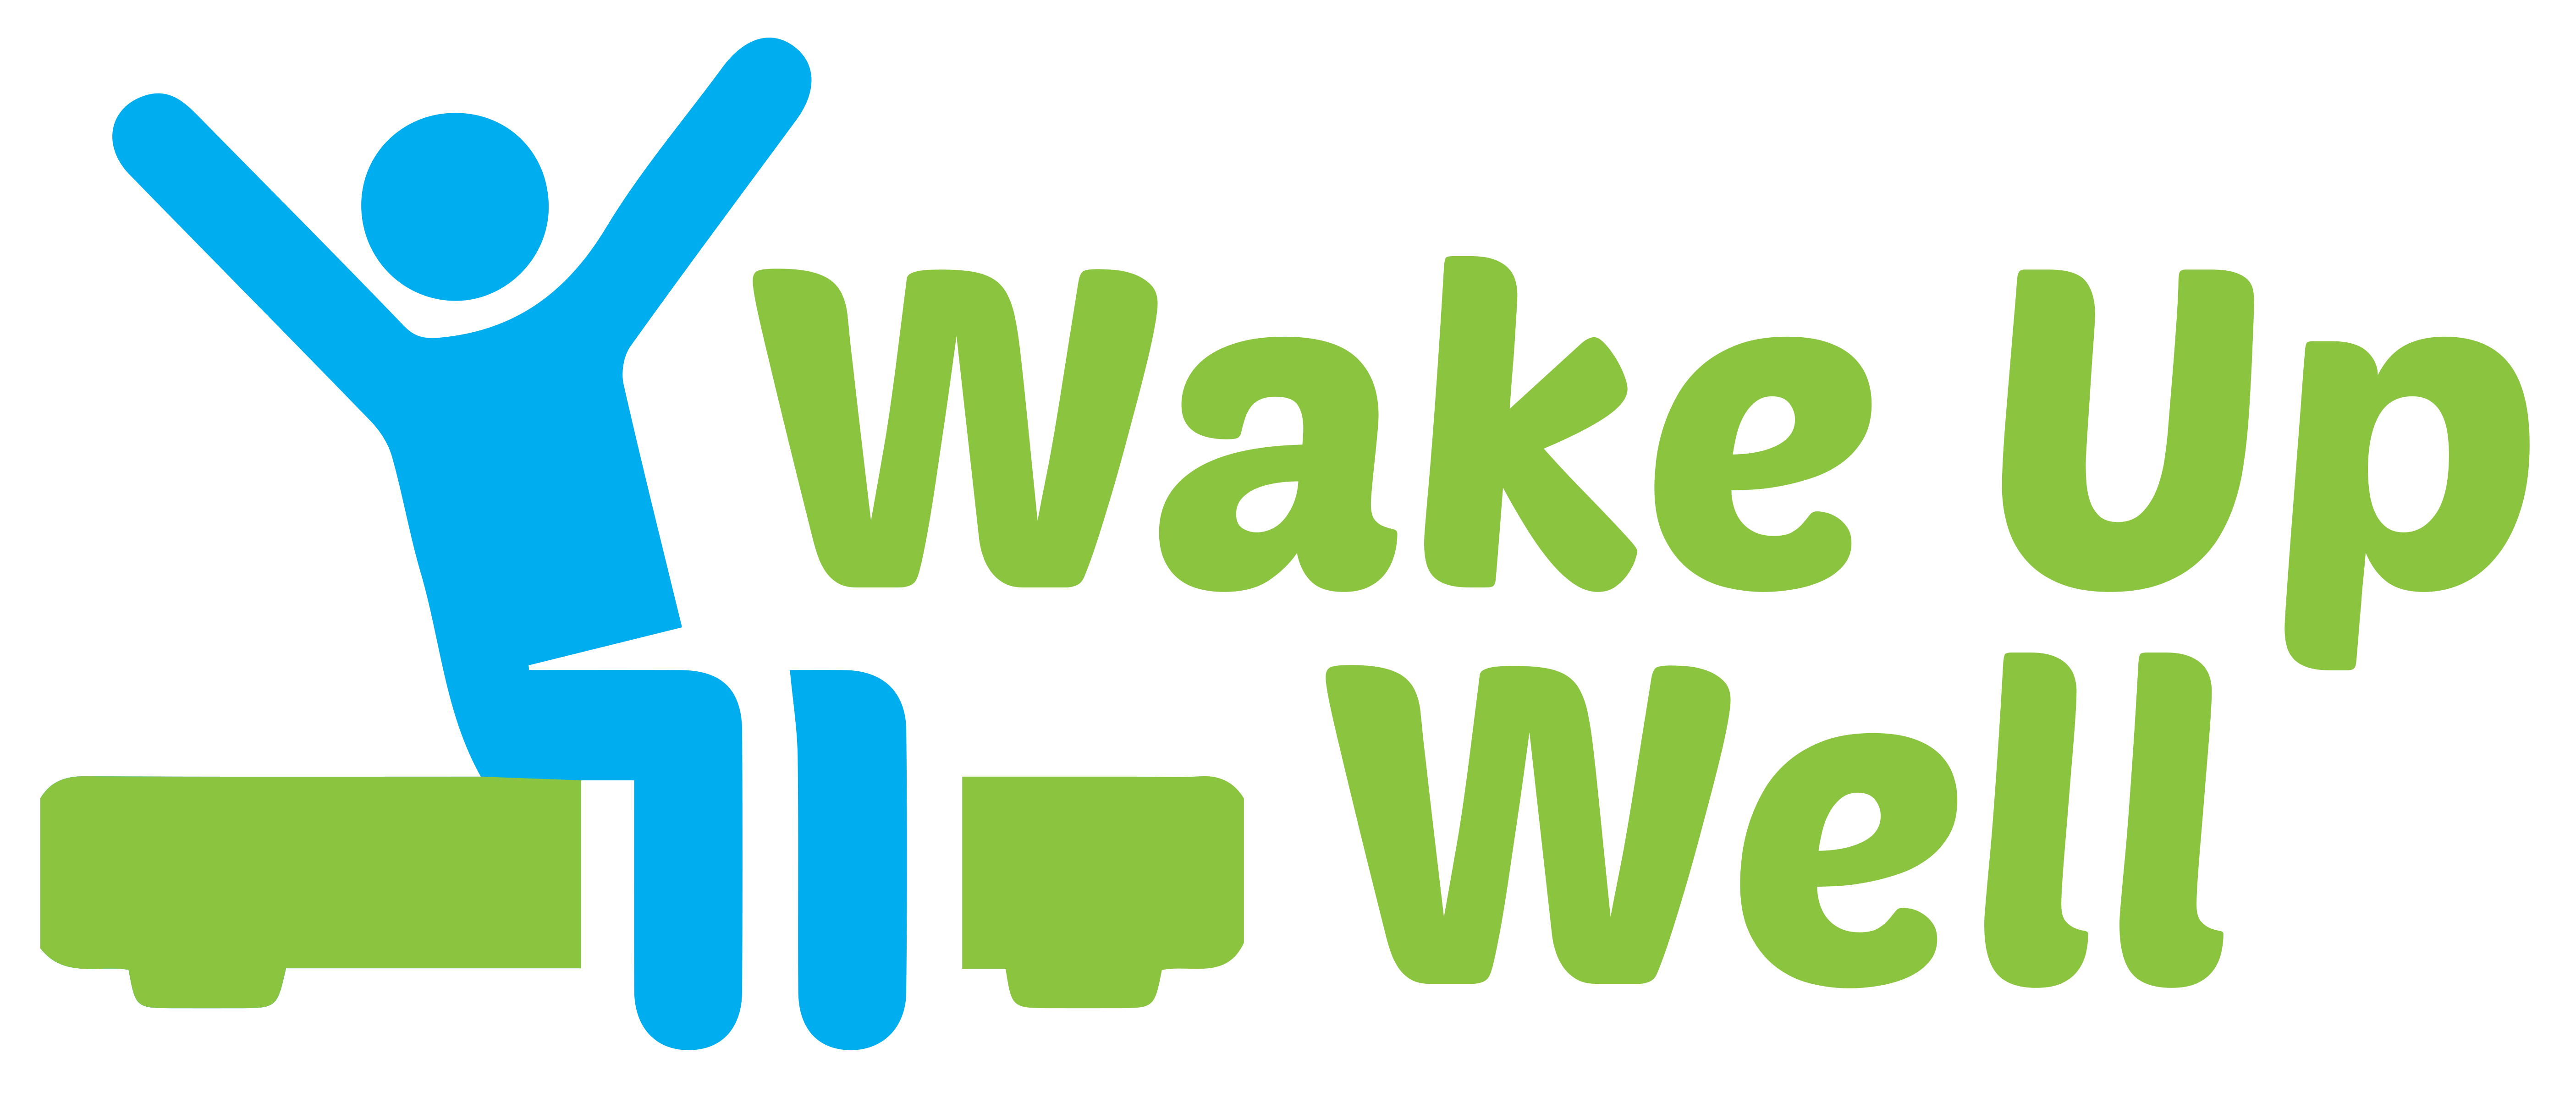 wake up well logo Final